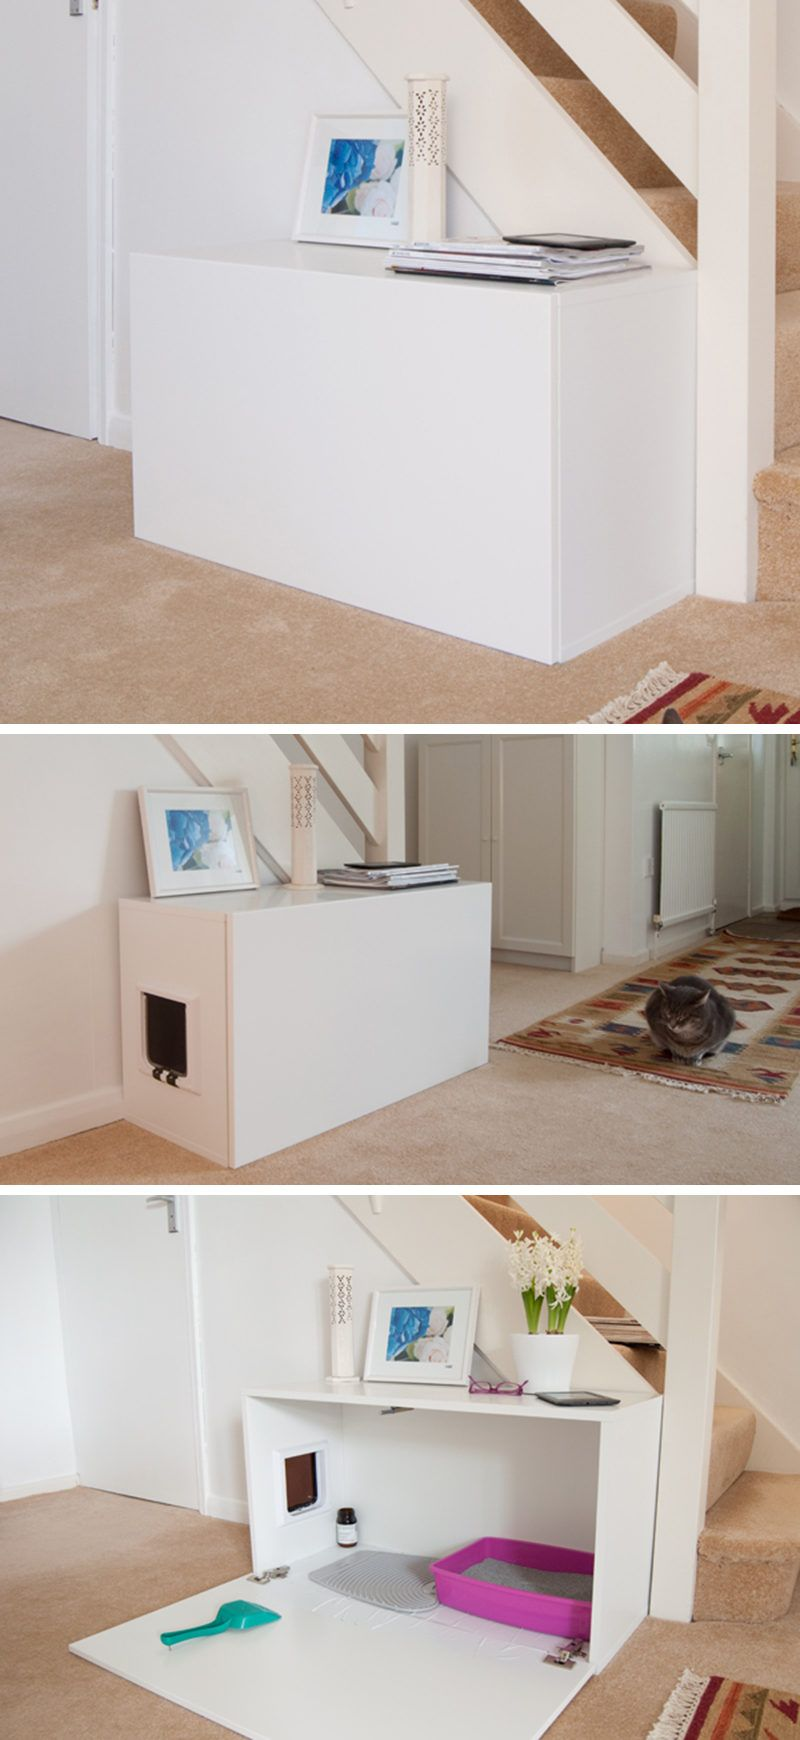 Attractive 10 Ideas For Hiding Your Cat Litter Box Good Ideas